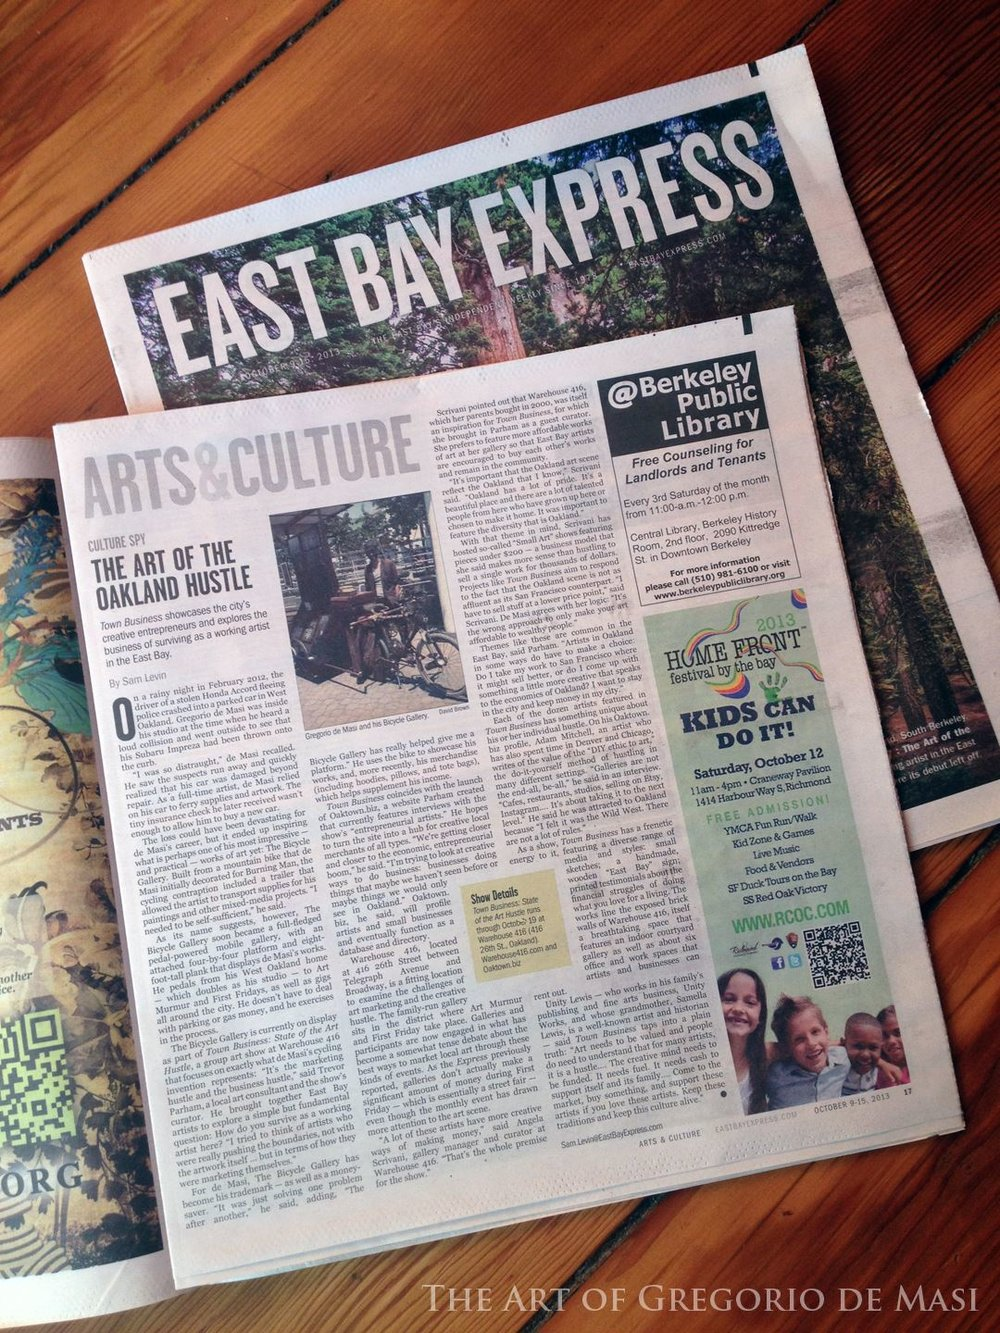 East Bay Express   interviewed me for an article about the Art of the Oakland Hustle, and my Bicycle Art Gallery   ARTICLE:    eastbayexpress.com/the-art-of-the-oakland-hustle     VIDEO INTERVIEW:    .youtube.com/watch